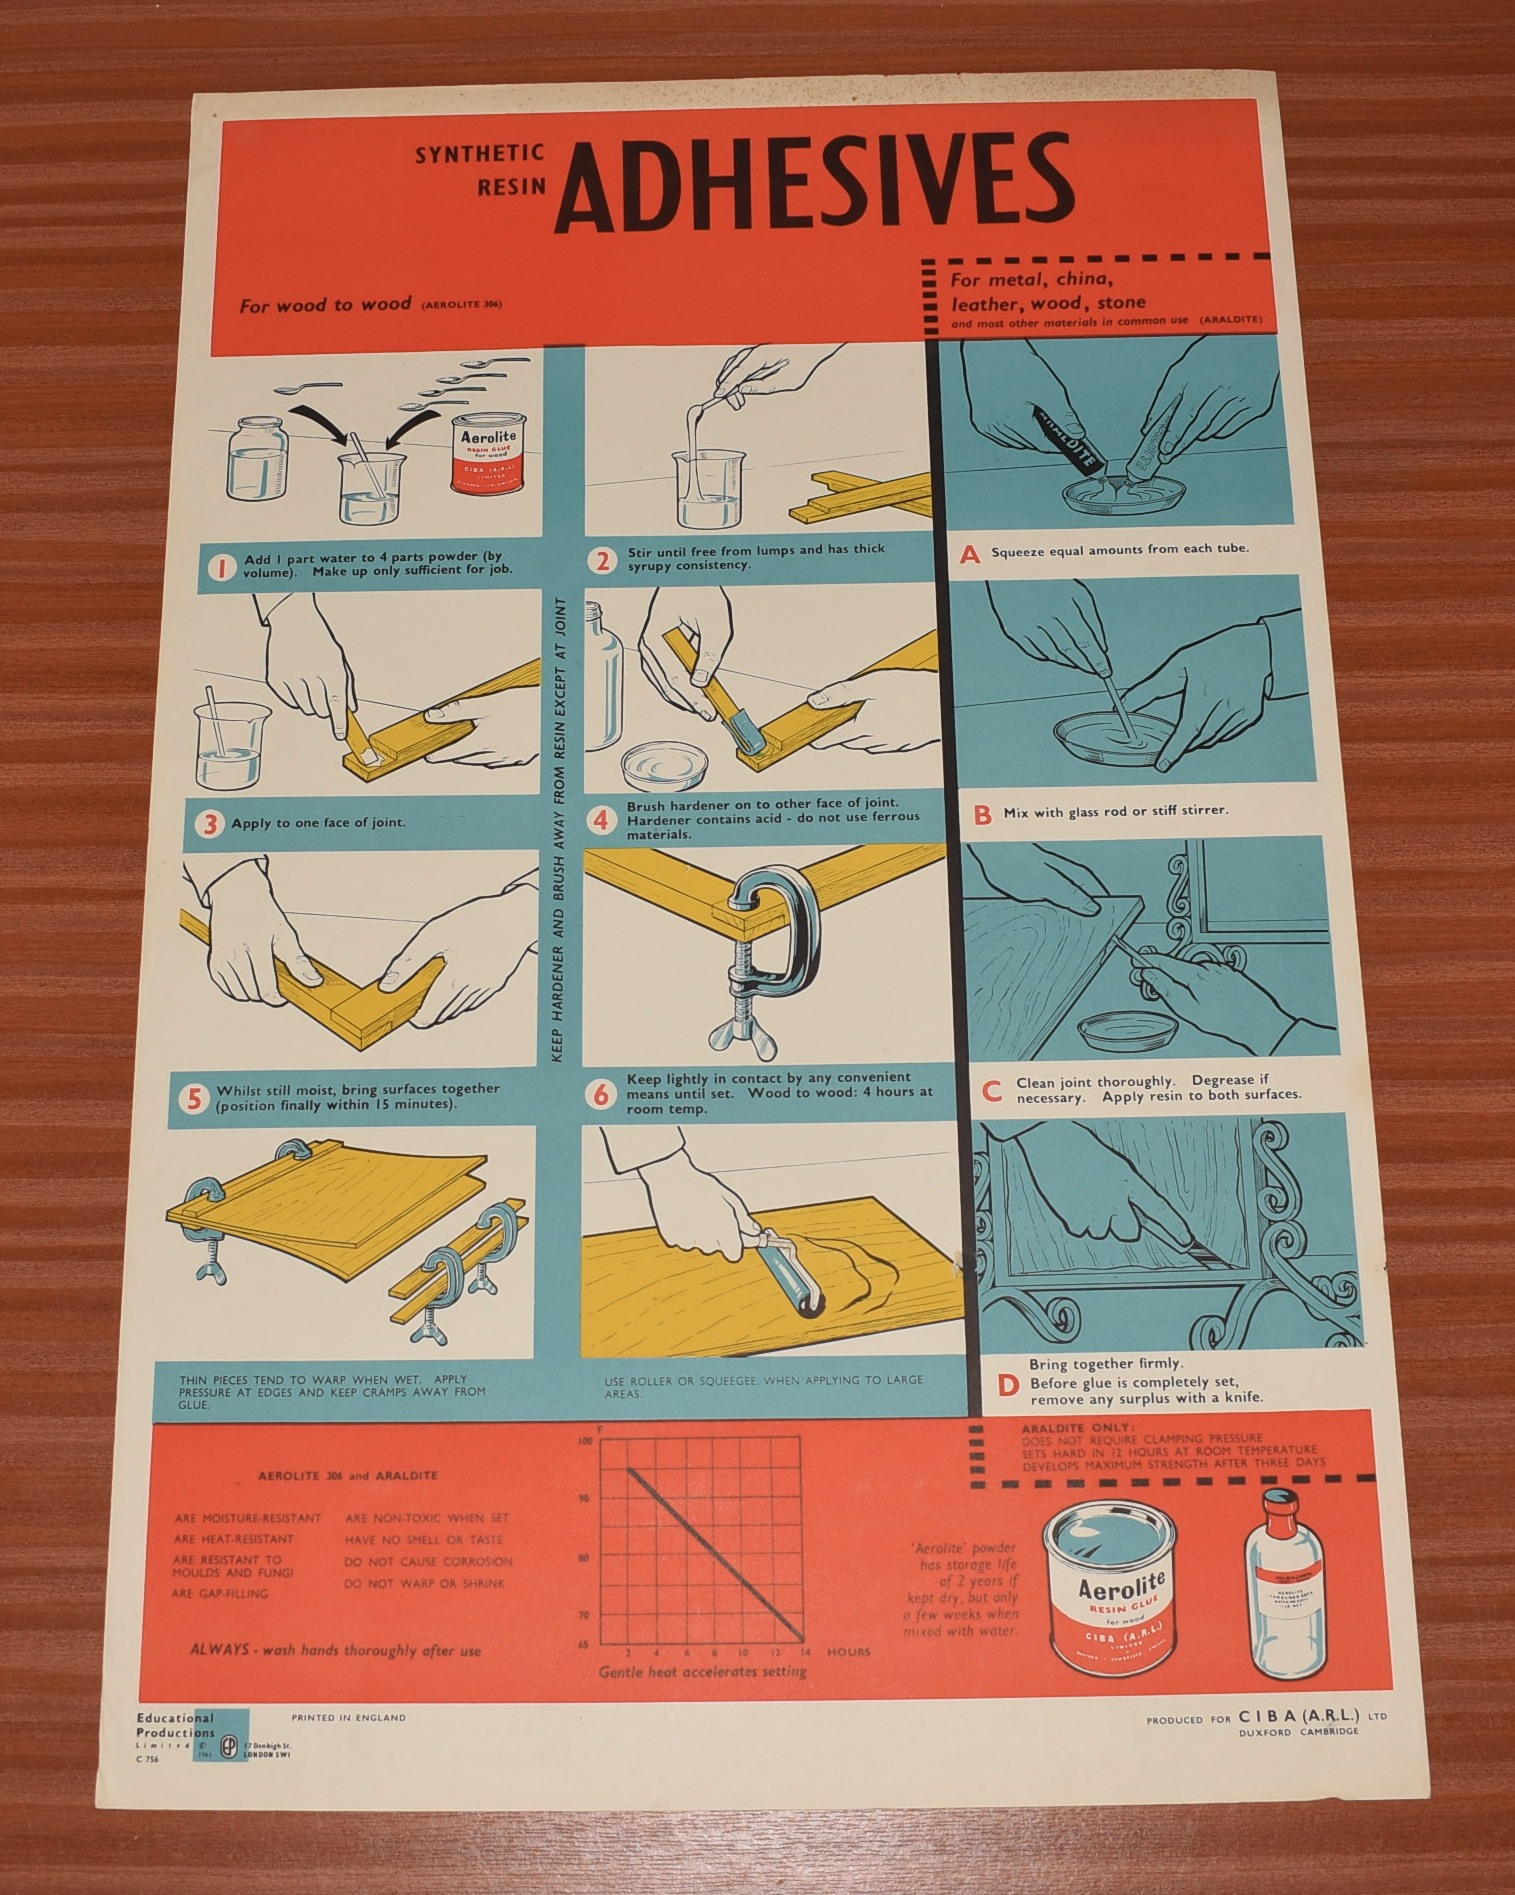 Image for ORIGINAL POSTER.  Synthetic Resin Adhesives, Aerolite 306, Araldite